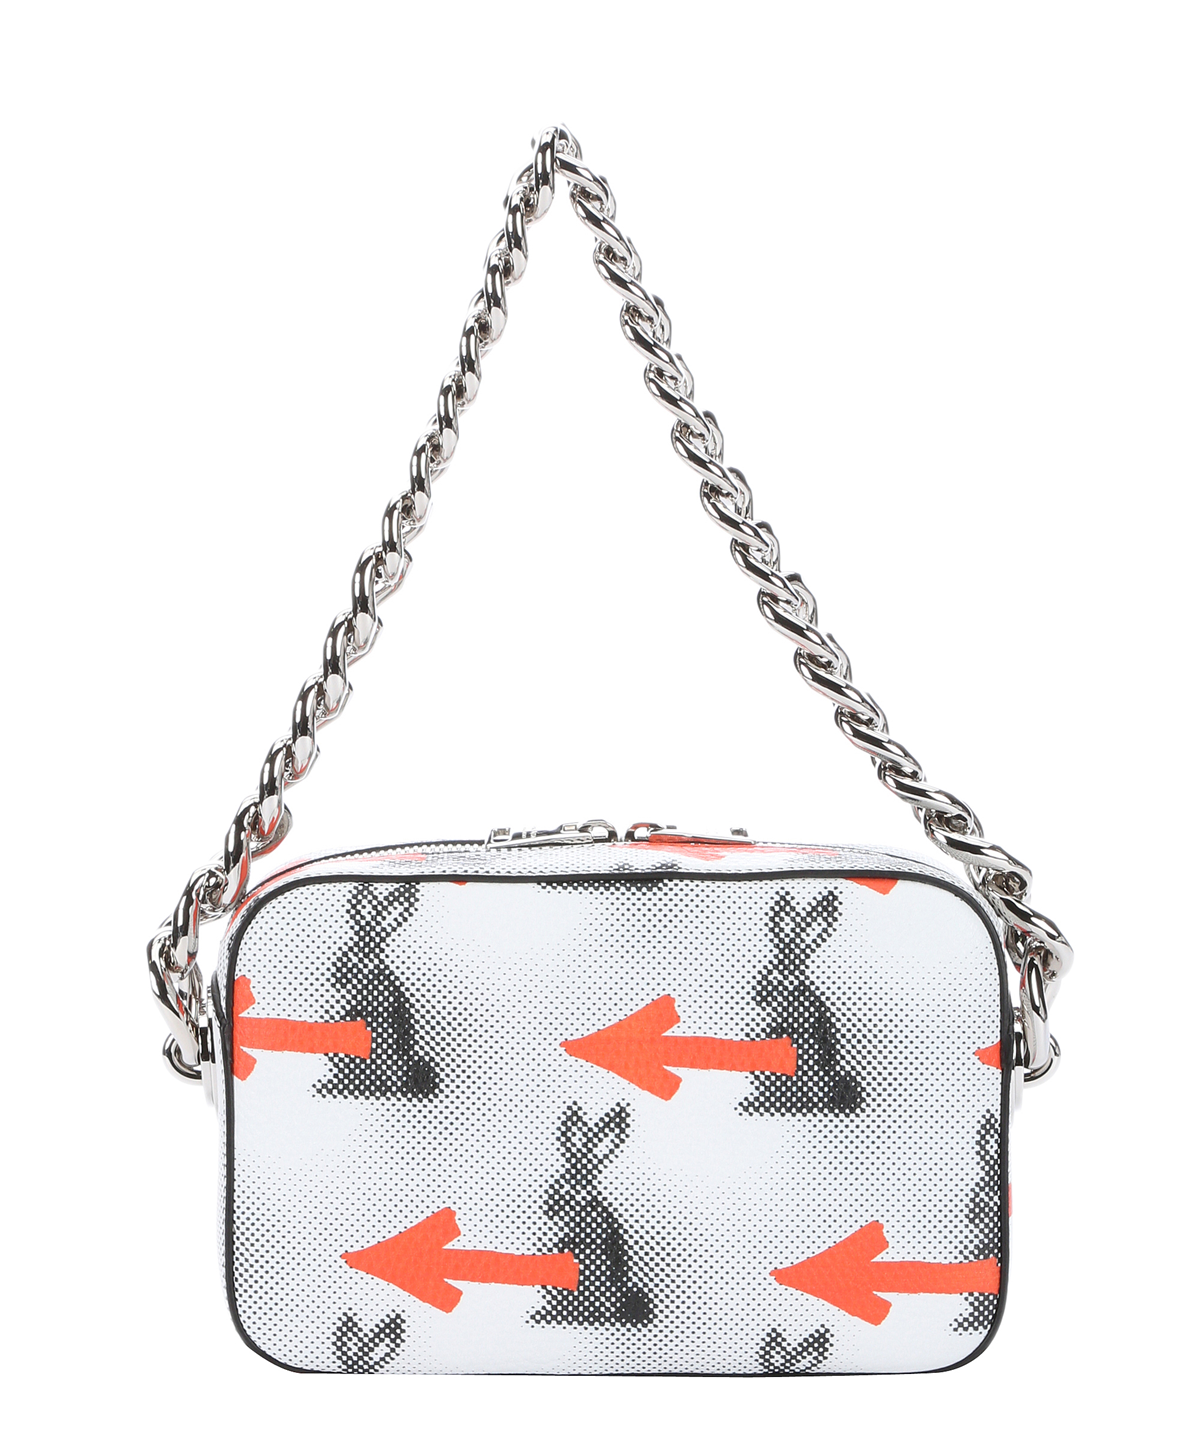 563544a783cd PRADA Orange And White Bunny-Arrow Print Chain Shoulder Bag .  prada  bags  shoulder  bags  leather  lining